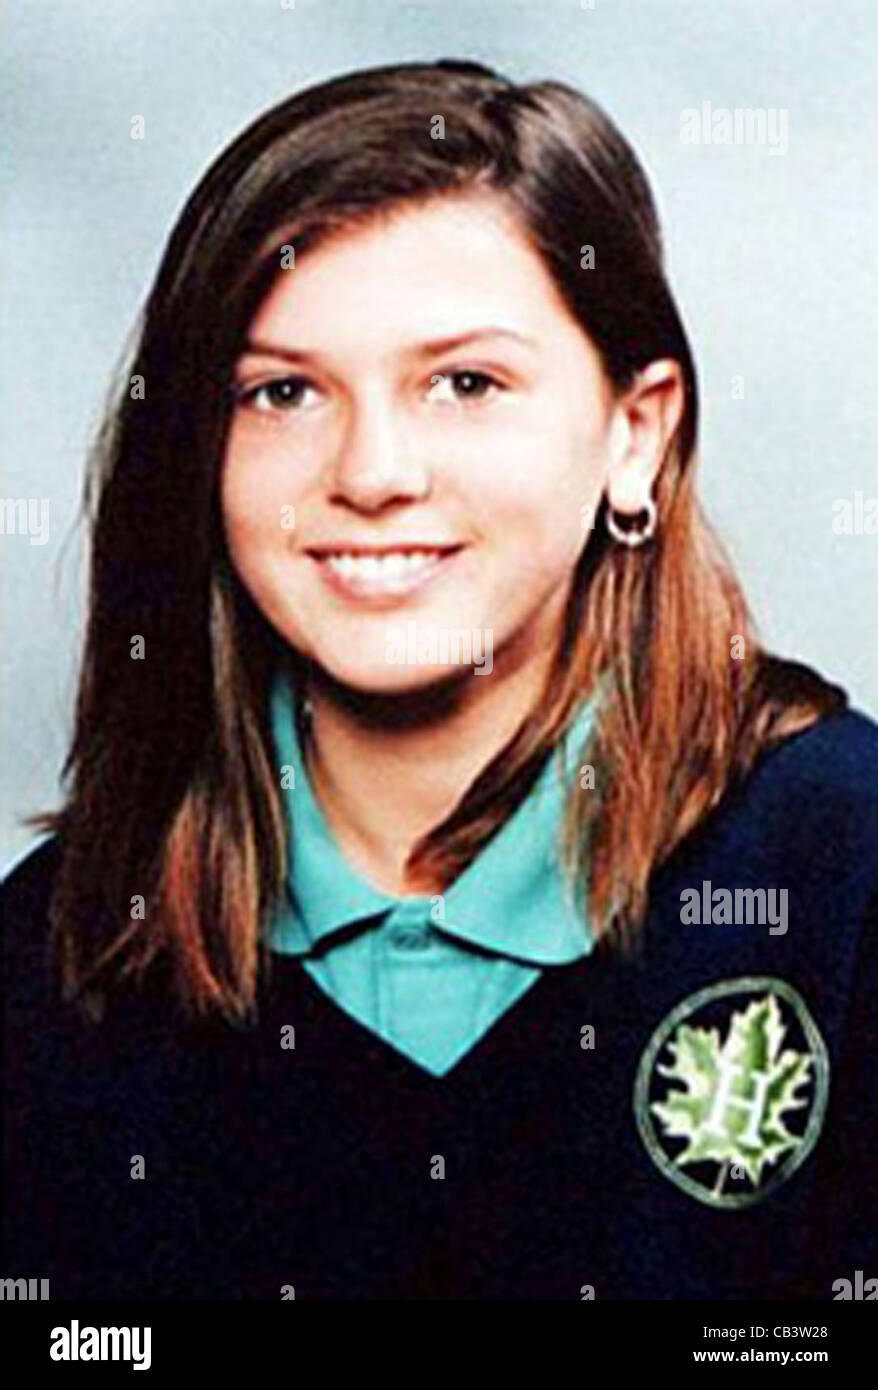 Unsolved Crime Stock Photos Images Alamy Circuit Breakers Service Billie The Girl Jo Jenkins 29 Mar 198315 Feb1997 Image